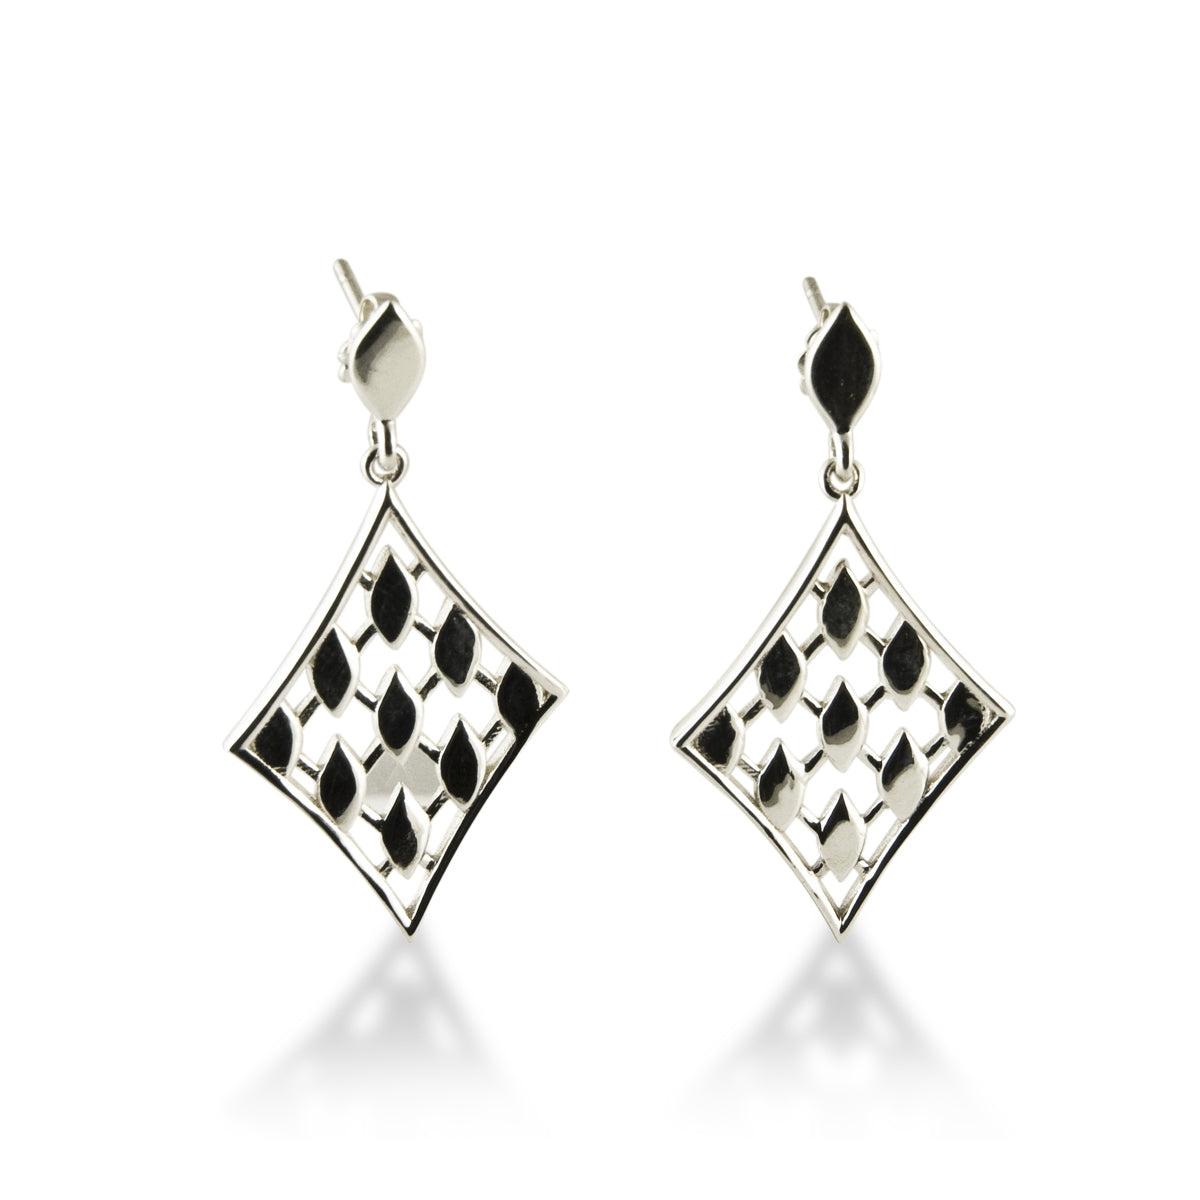 Diamond Shape Casablanca Drop Earrings, Sterling Silver